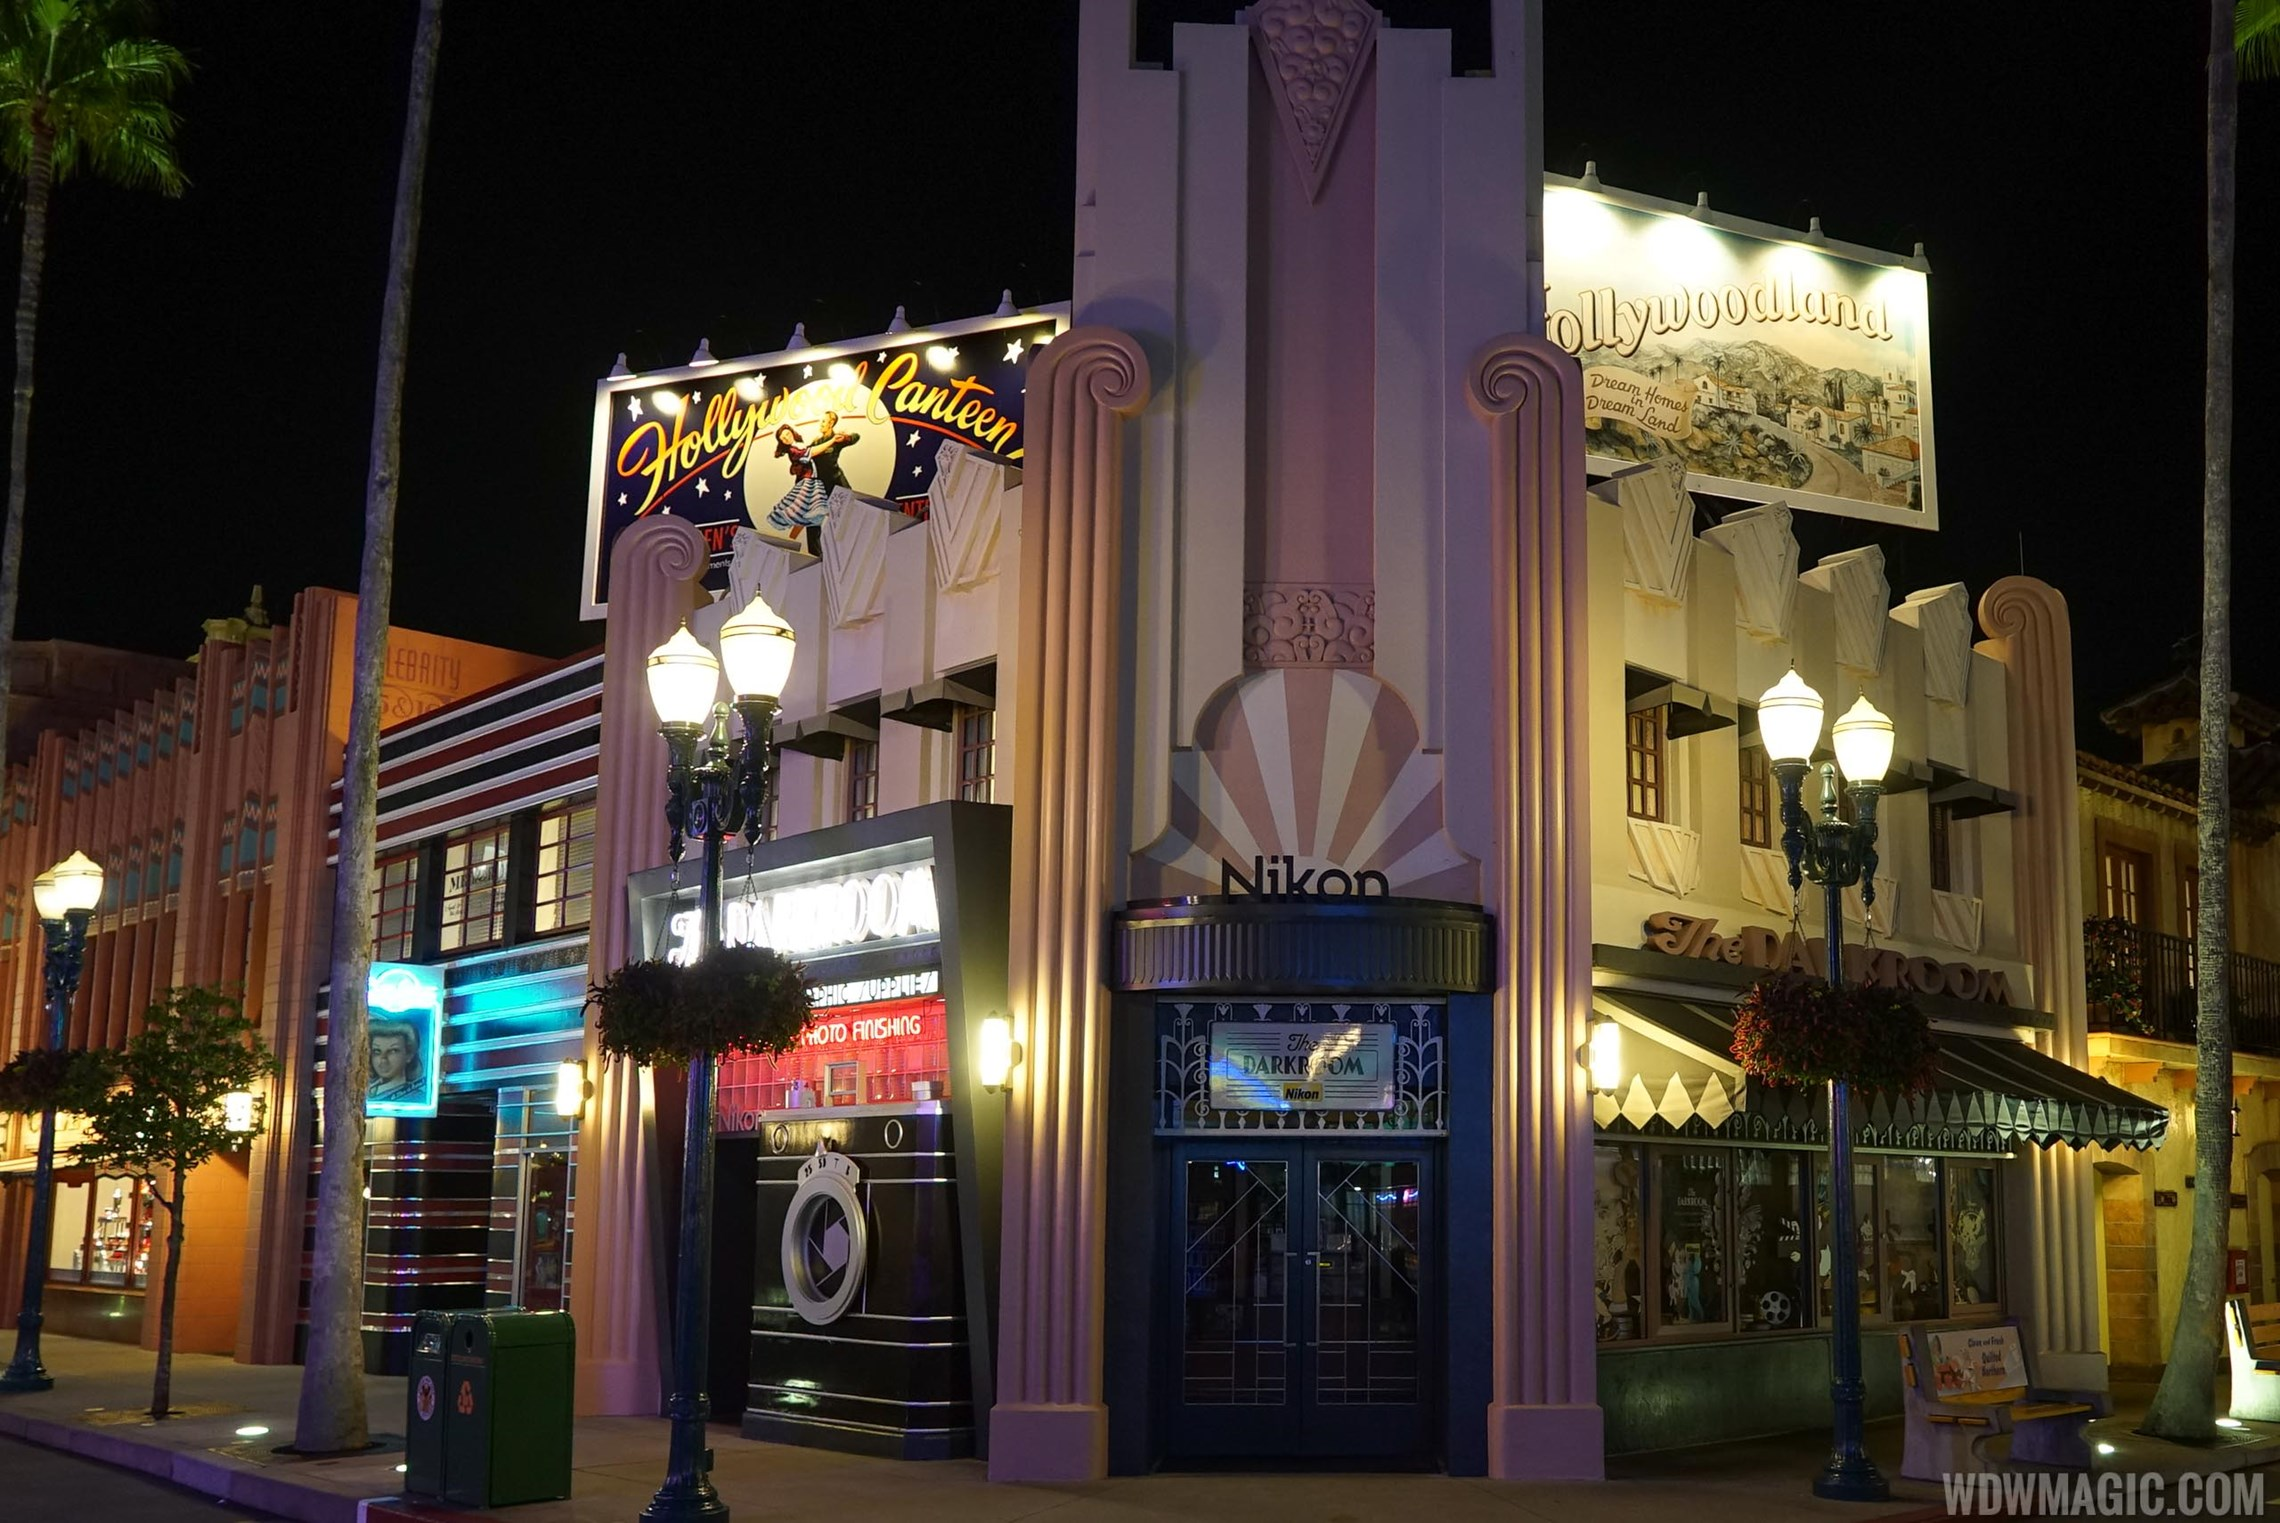 The Darkroom and Cover Story closing for lengthy refurbishment at Disney's Hollywood Studios